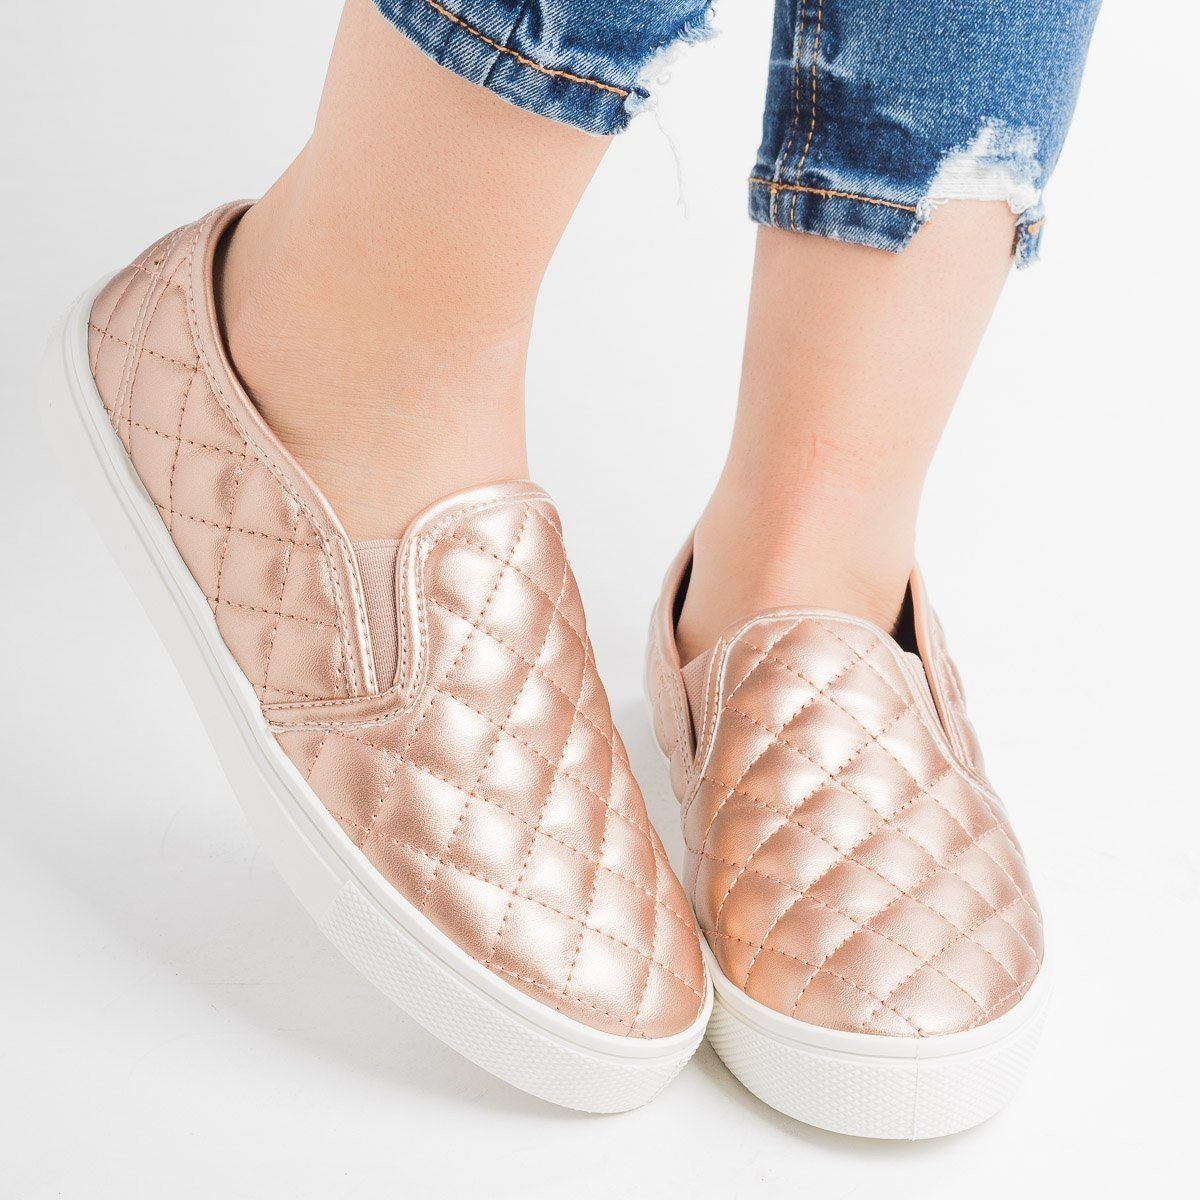 Summer Sneakers - Weeboo Shoes Becky-01